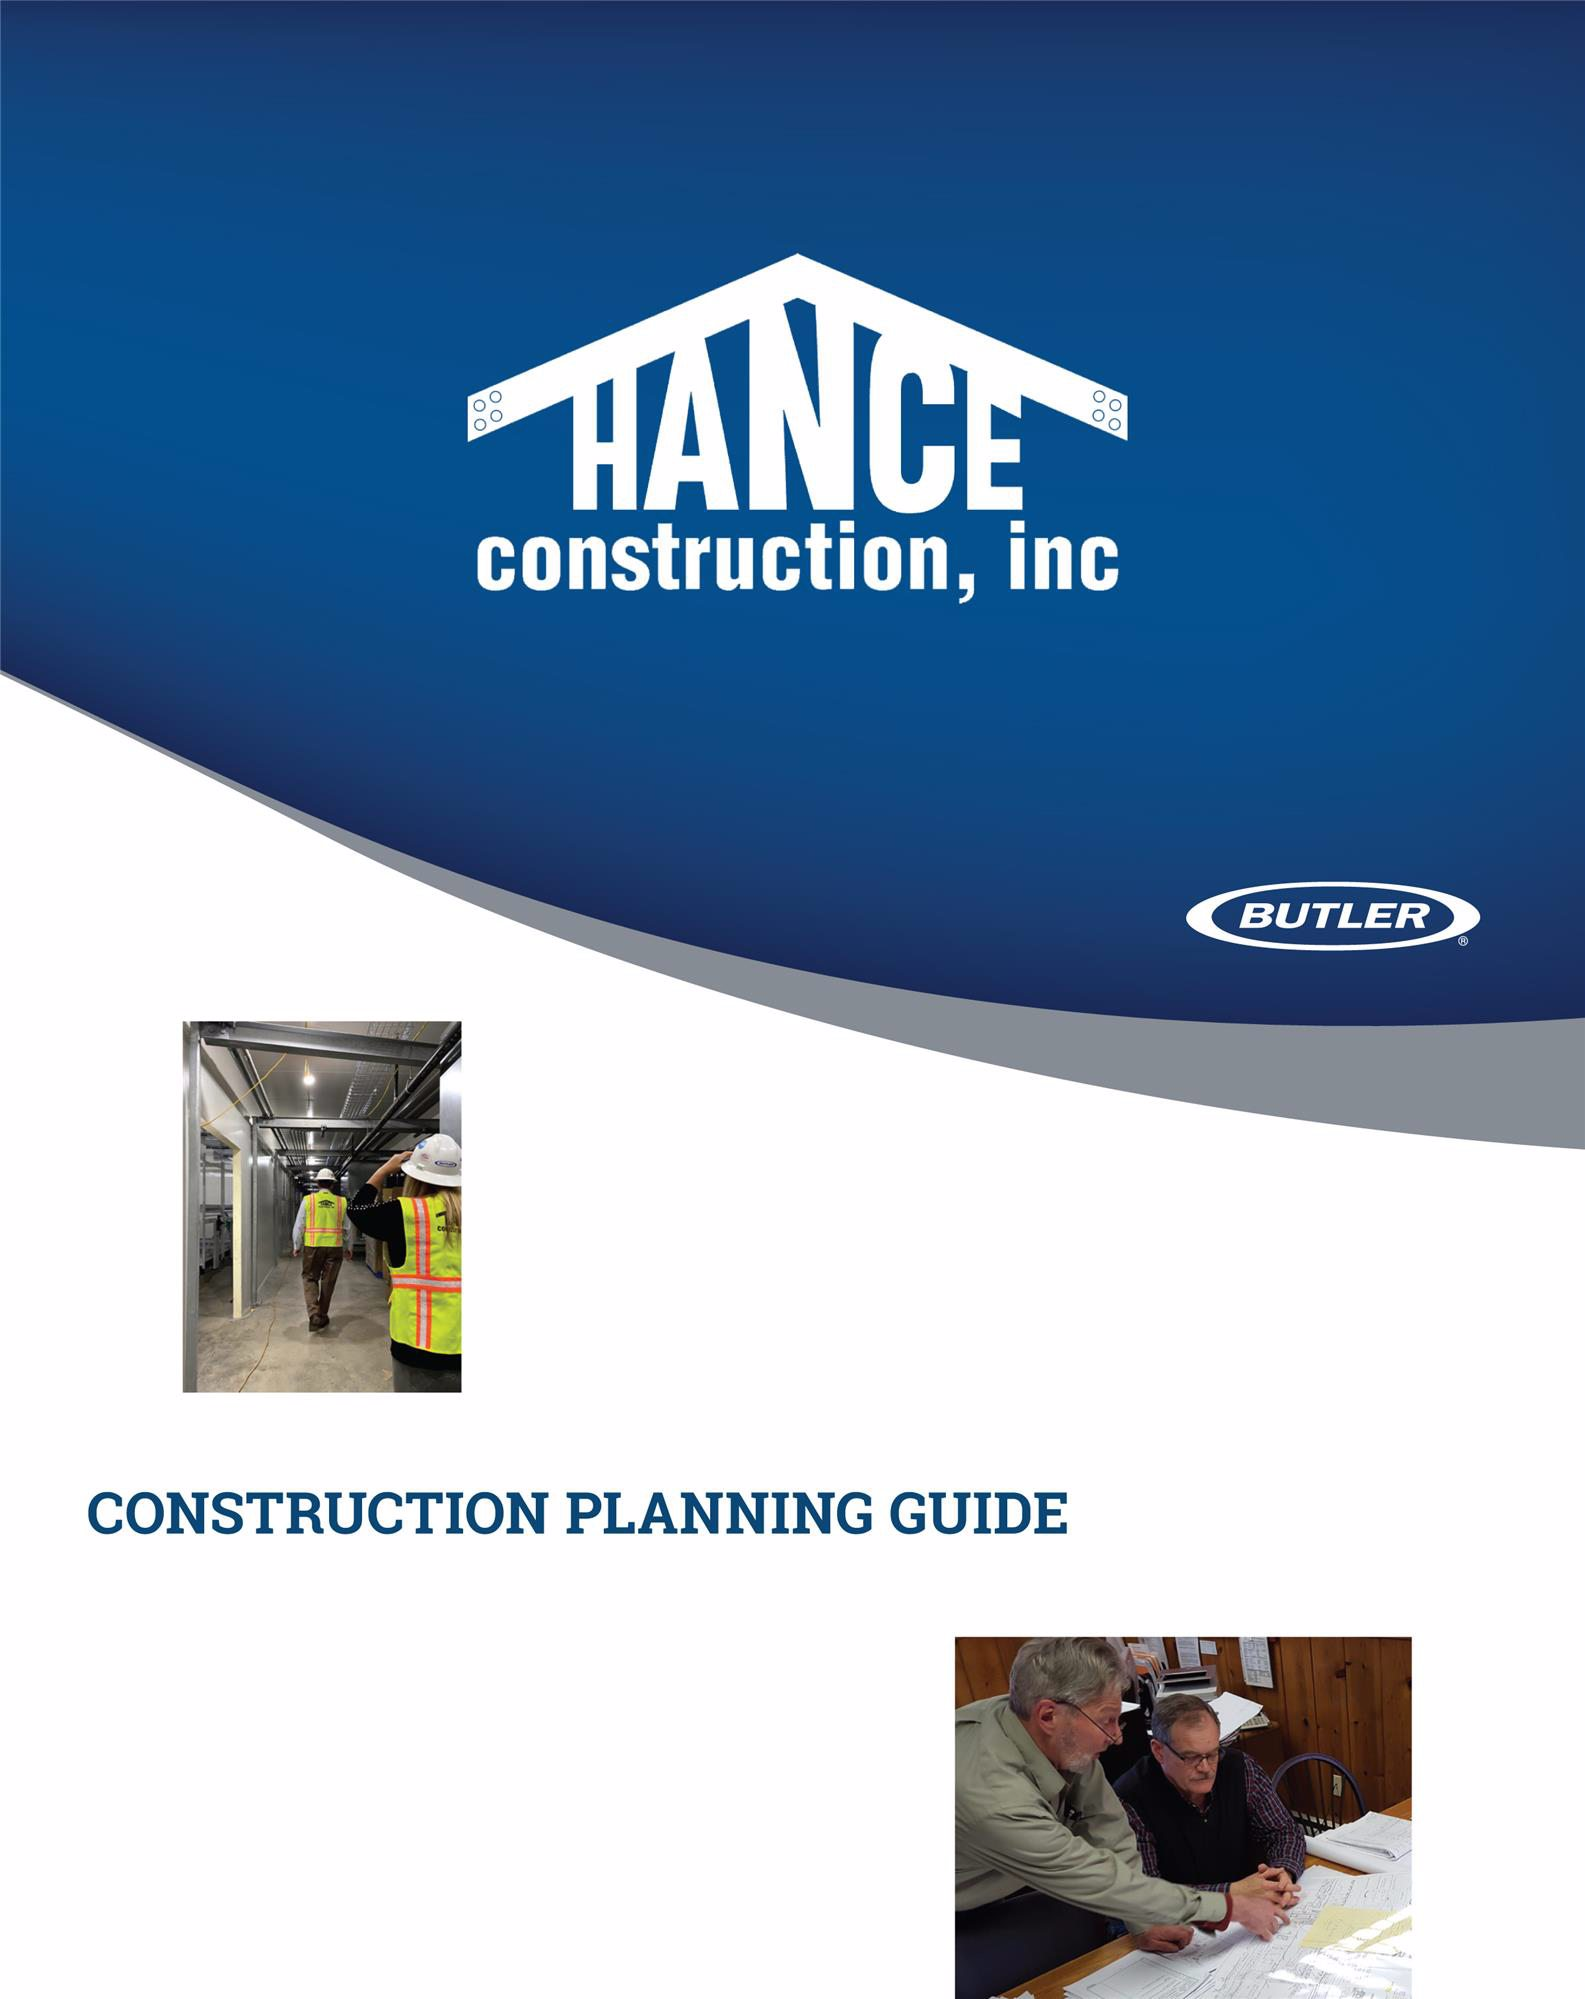 Hance - Construction Planning Guide